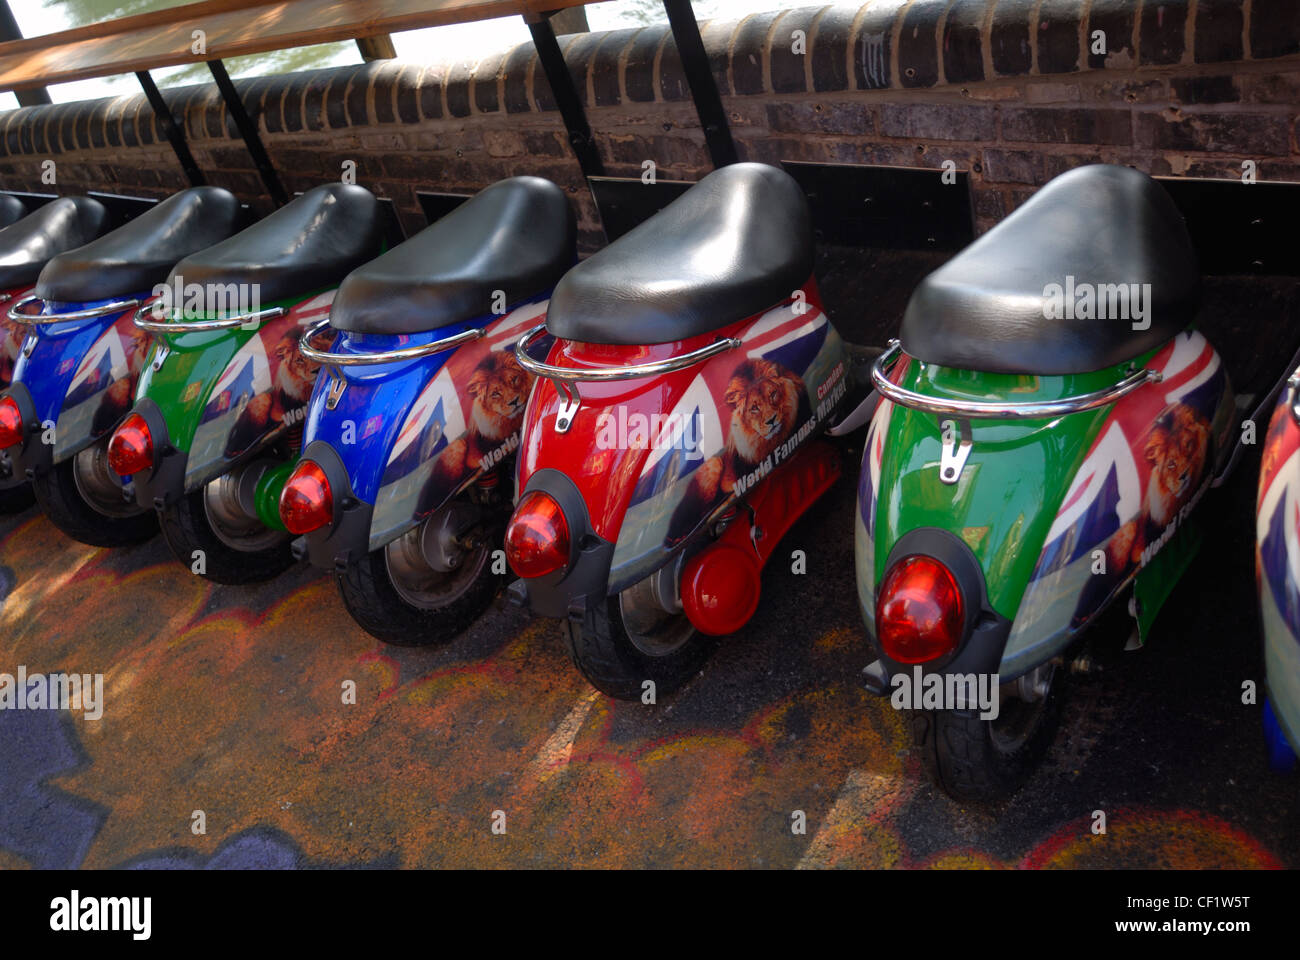 Novelty stools in the shape of scooters in Camden market. - Stock Image